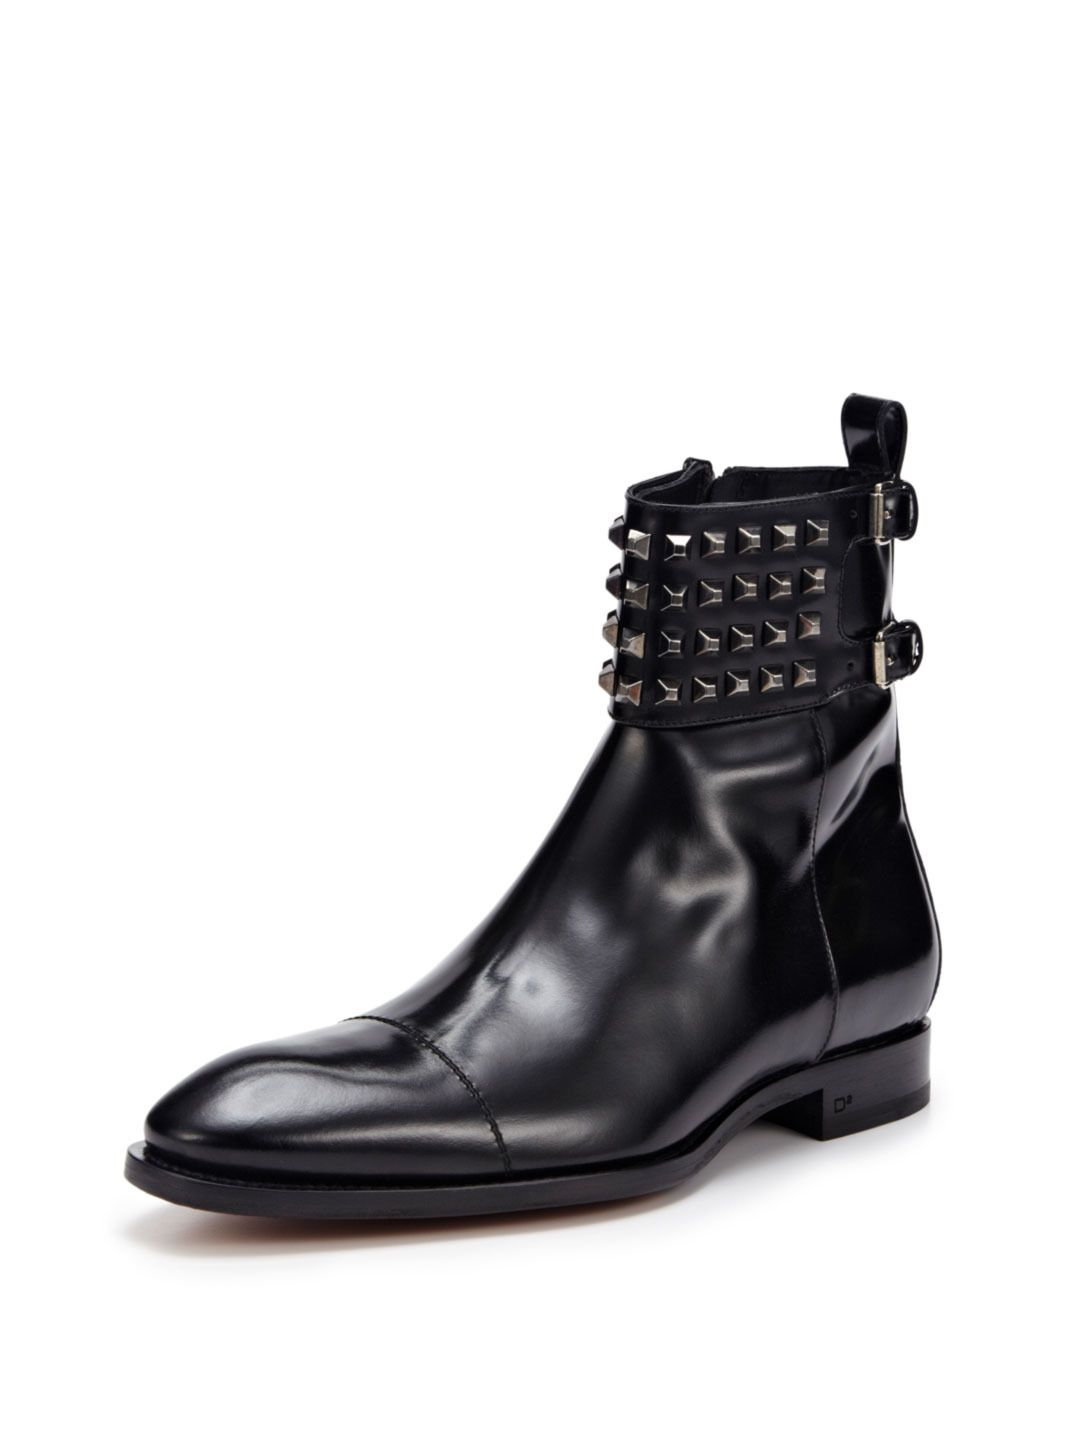 DSquared GiltFooTWearBoots Boots Leather at Studded by CxoerBd